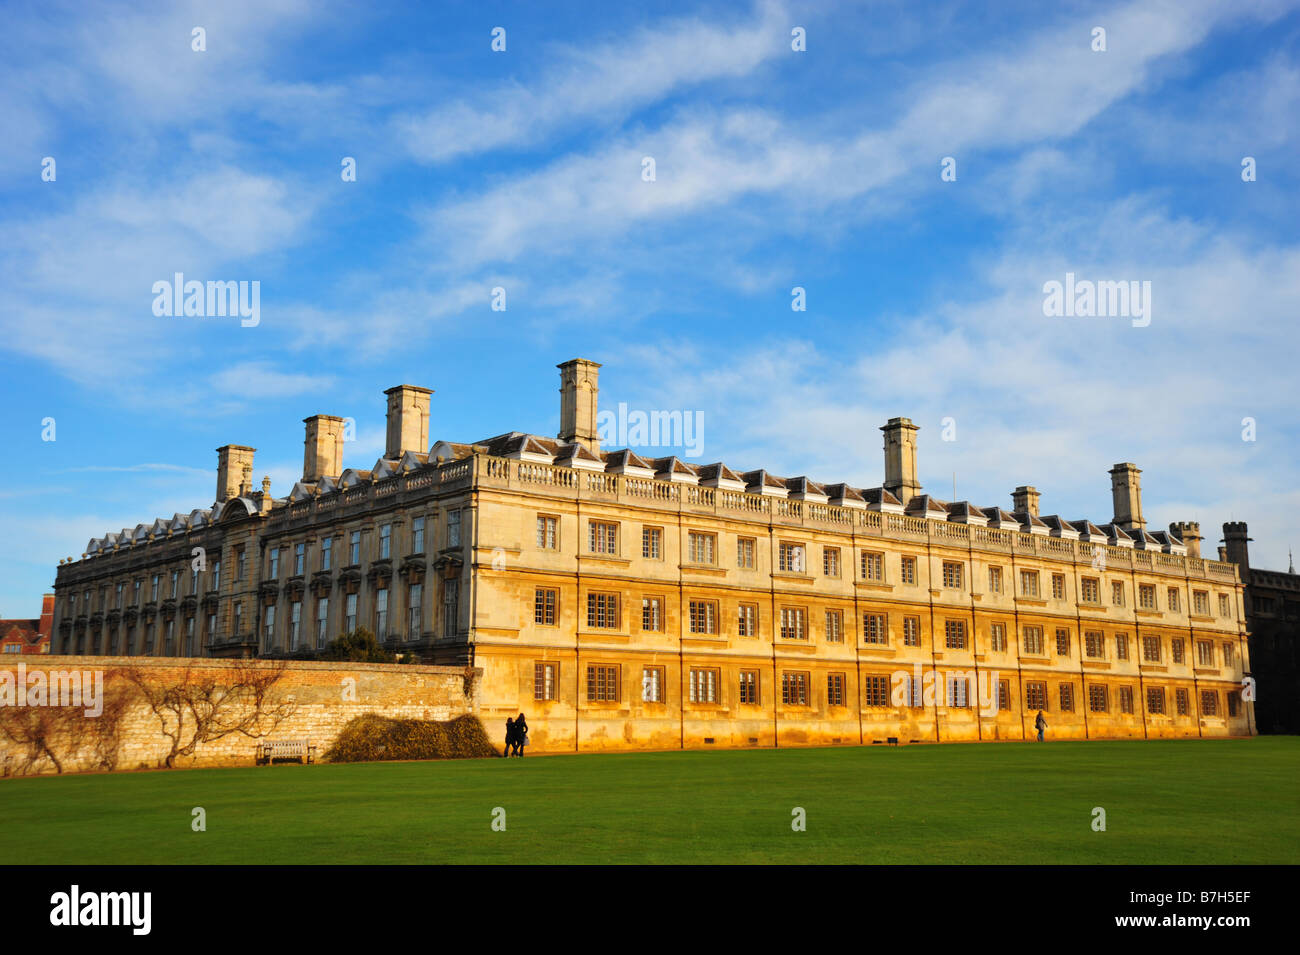 University Building at Kings College, Cambridge - Stock Image